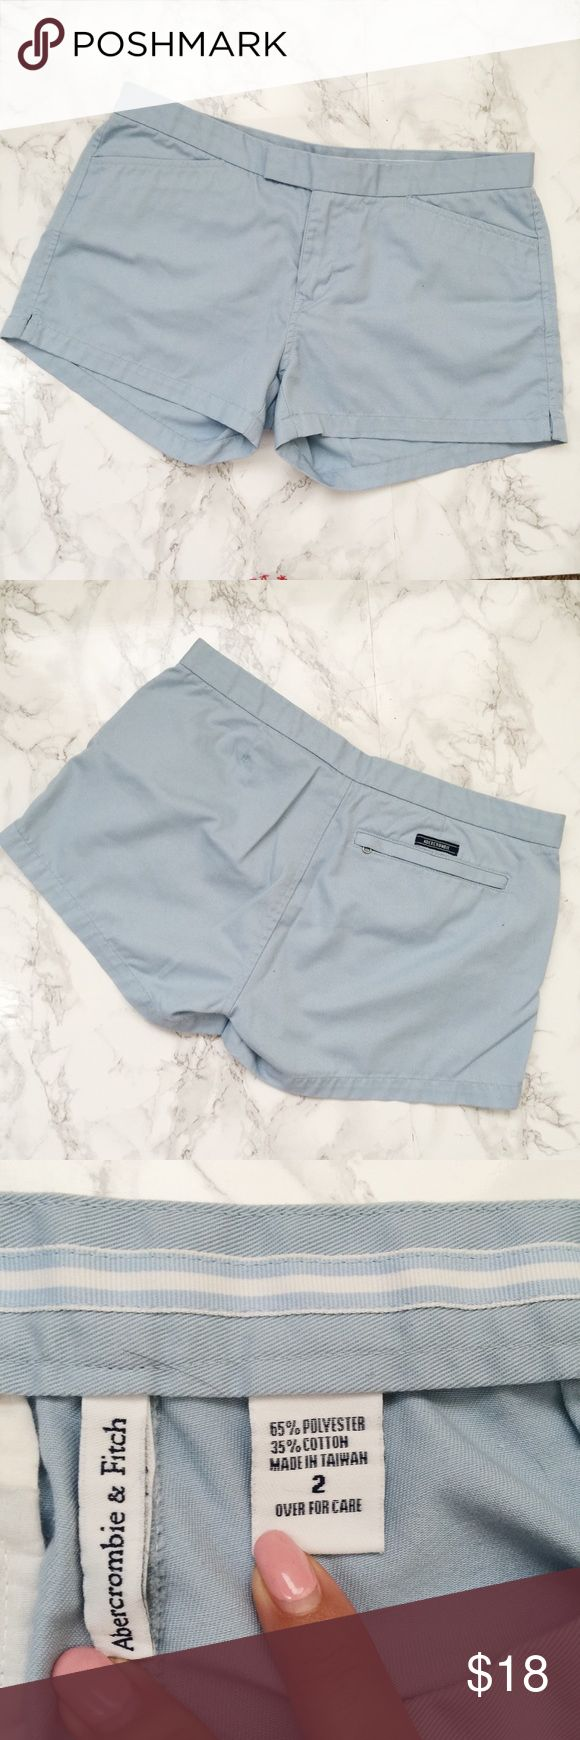 Abercrombie and Fitch Light Blue Shorts Light blue shorts with pockets. Zipper pocket in back. Gently used condition. Abercrombie & Fitch Shorts